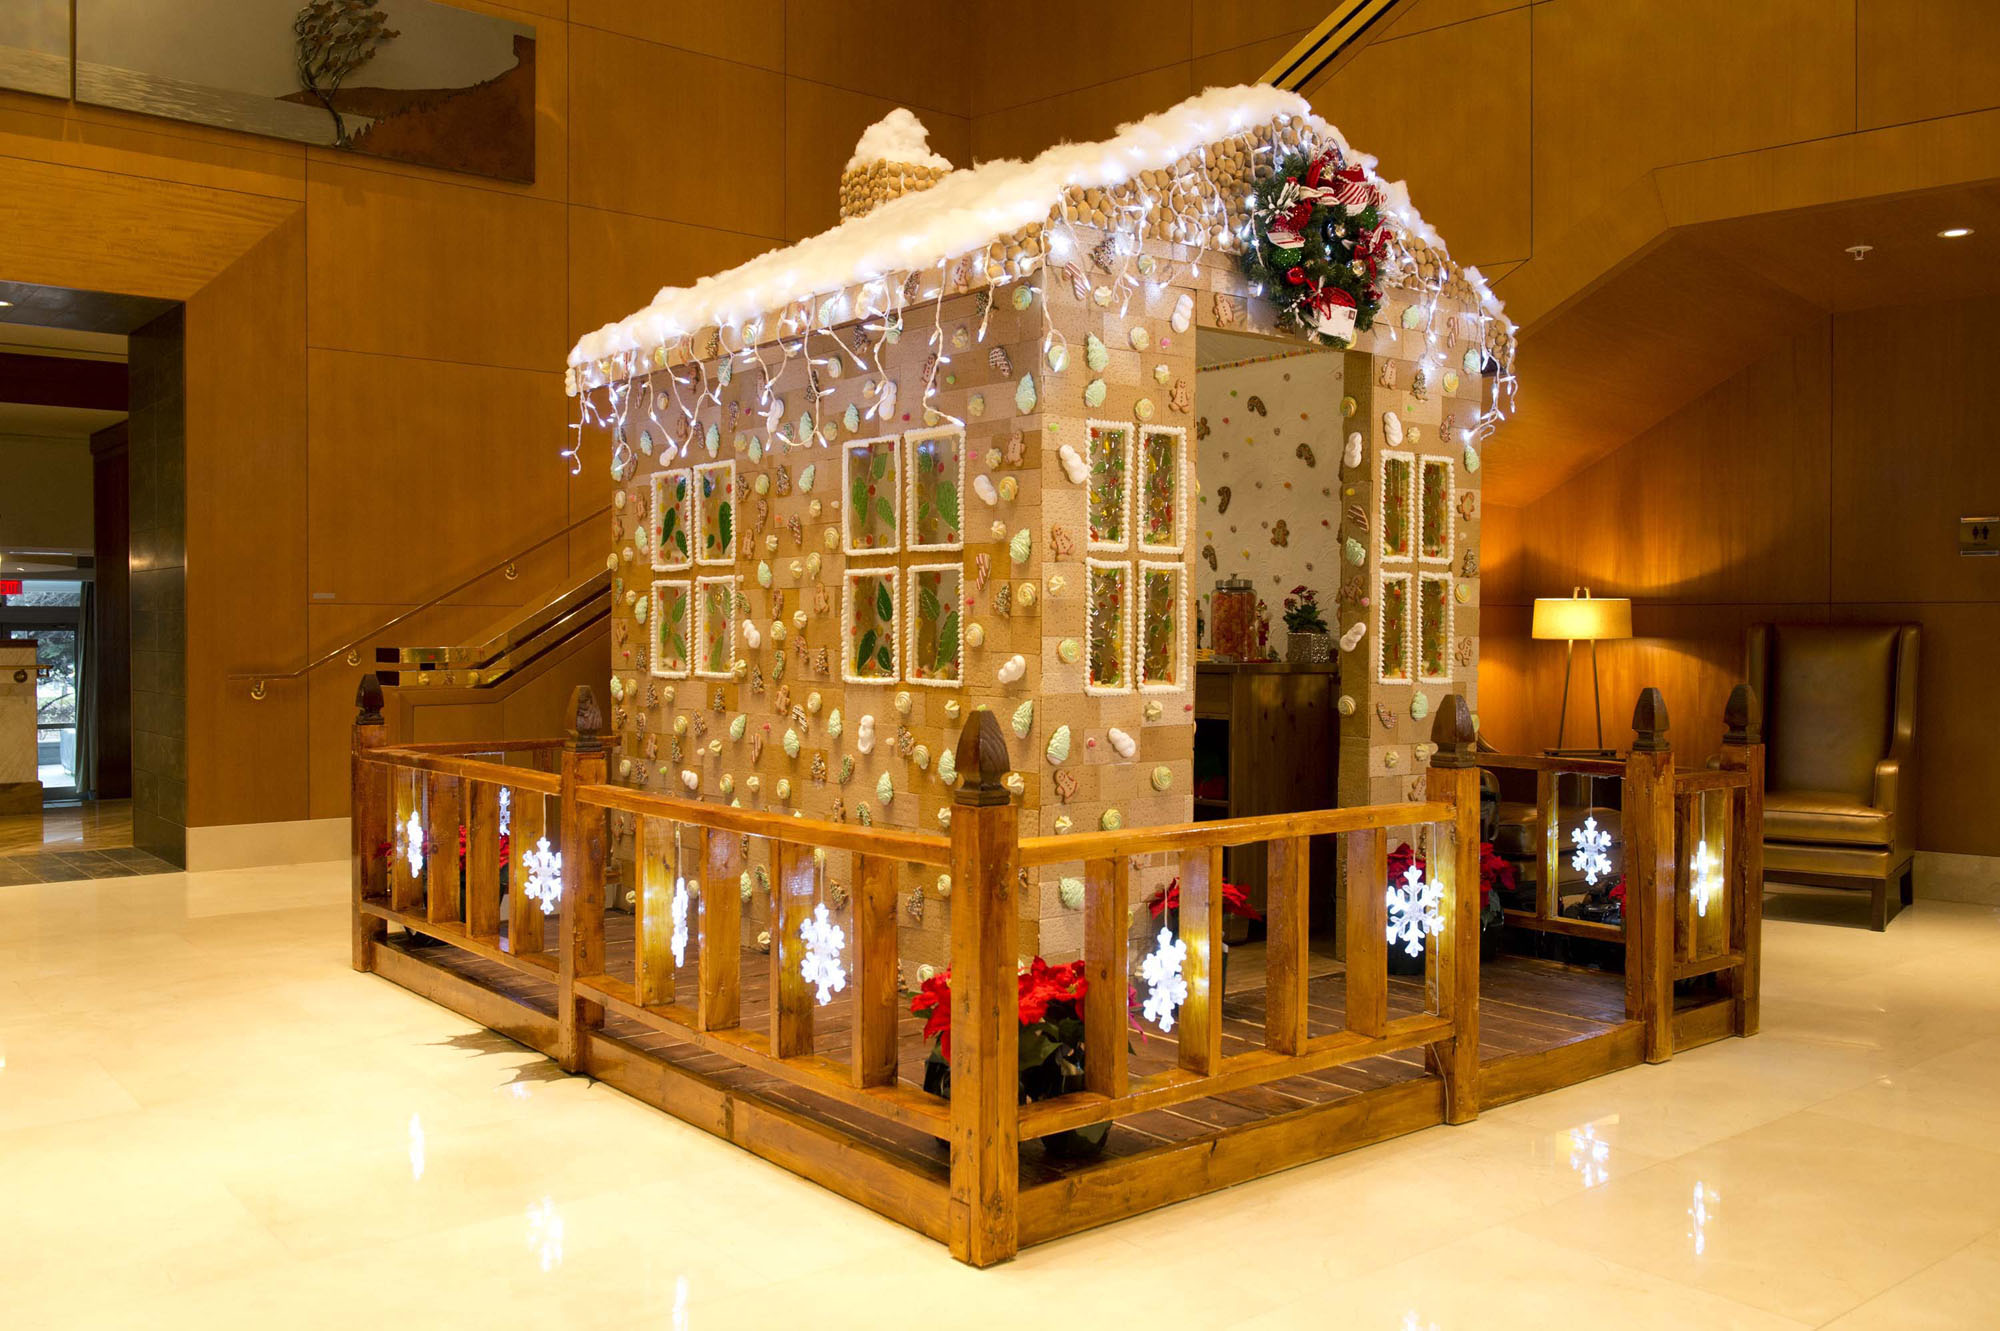 Toronto's largest gingerbread house goes on display at The Ritz-Carlton, Toronto, Friday, December 4, 2015. The life-size confection took over 500 hours to create and is the work of the hotel's pastry team. The Canadian Press Images PHOTO/The Ritz-Carlton, Toronto